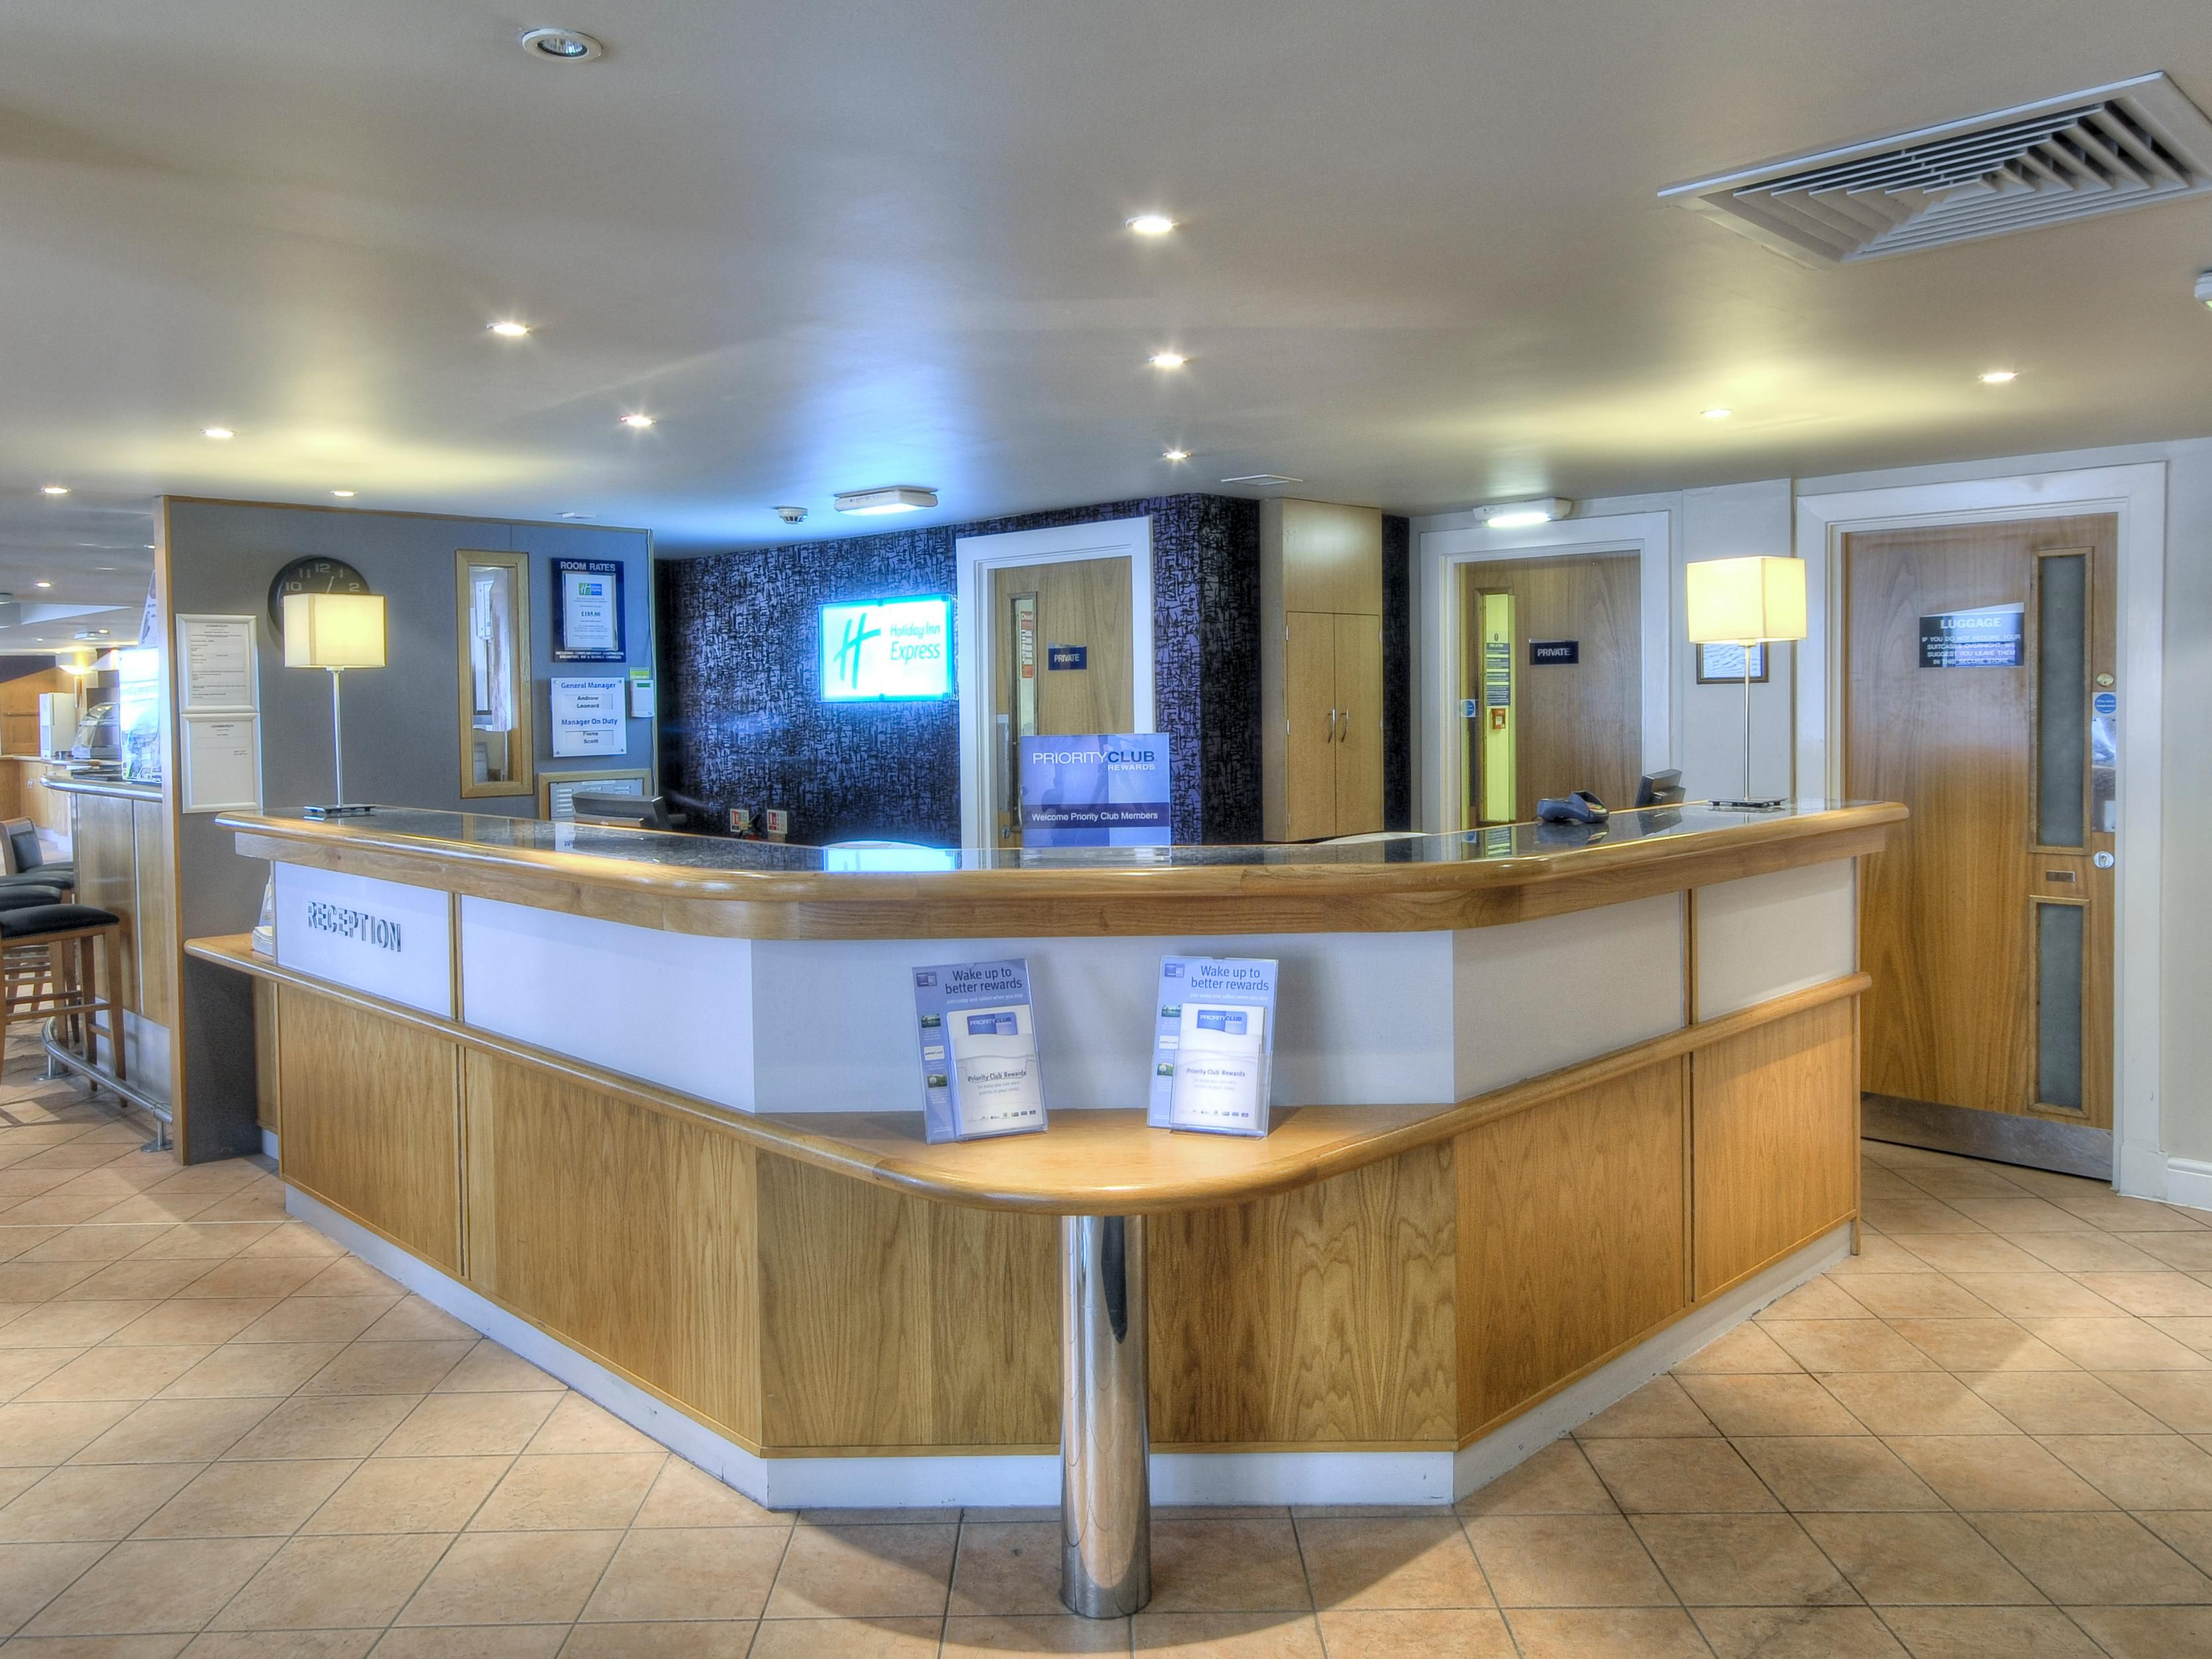 Our Reception team are always here for anything you need